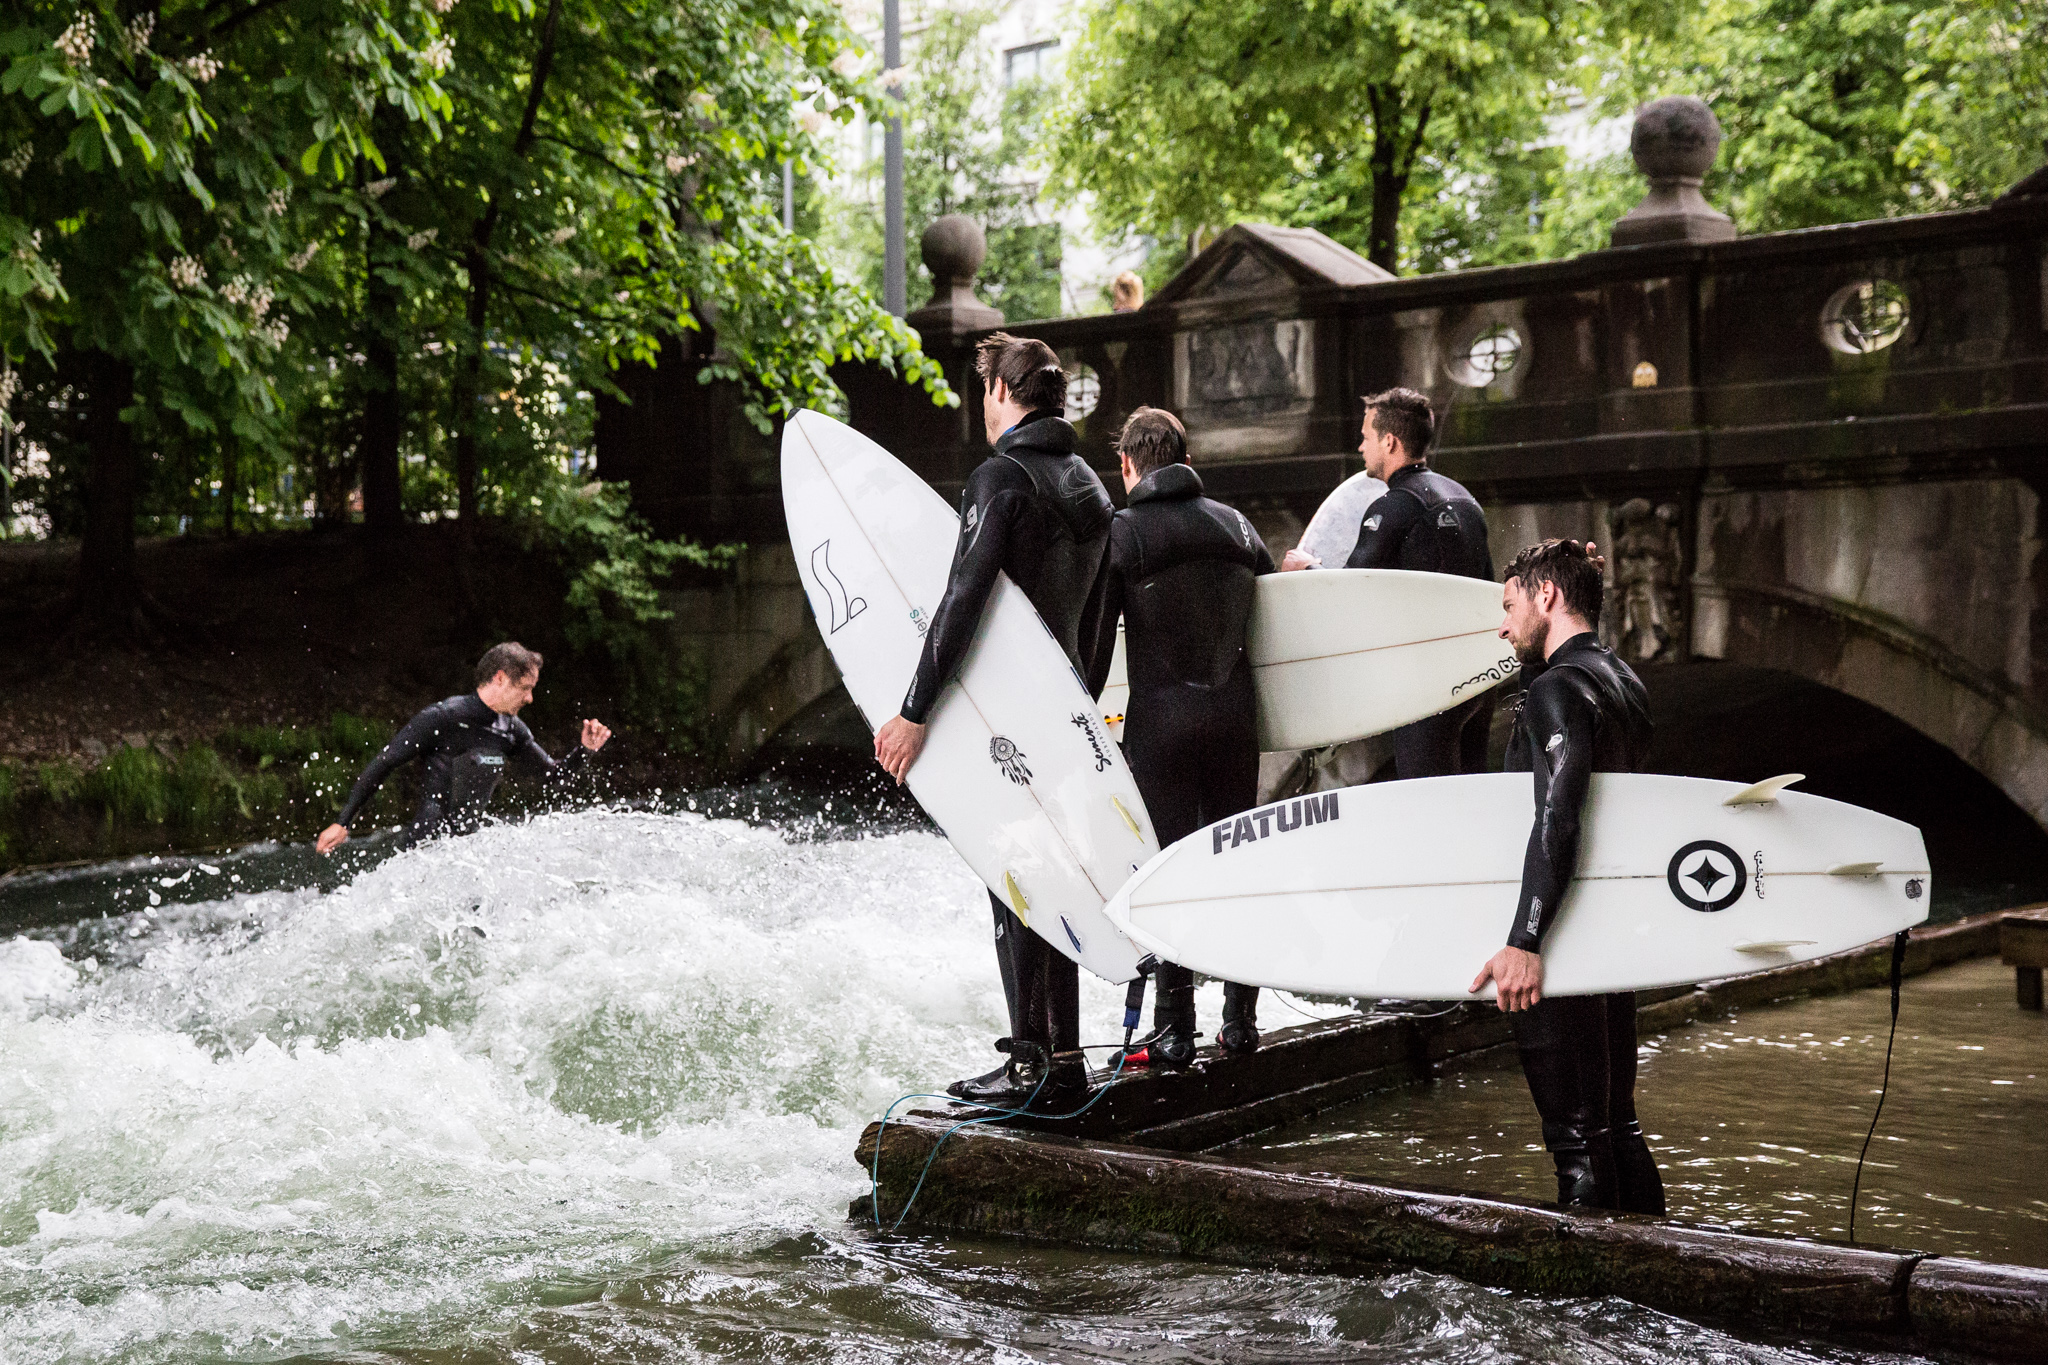 surfers surfing on eisbach river munich